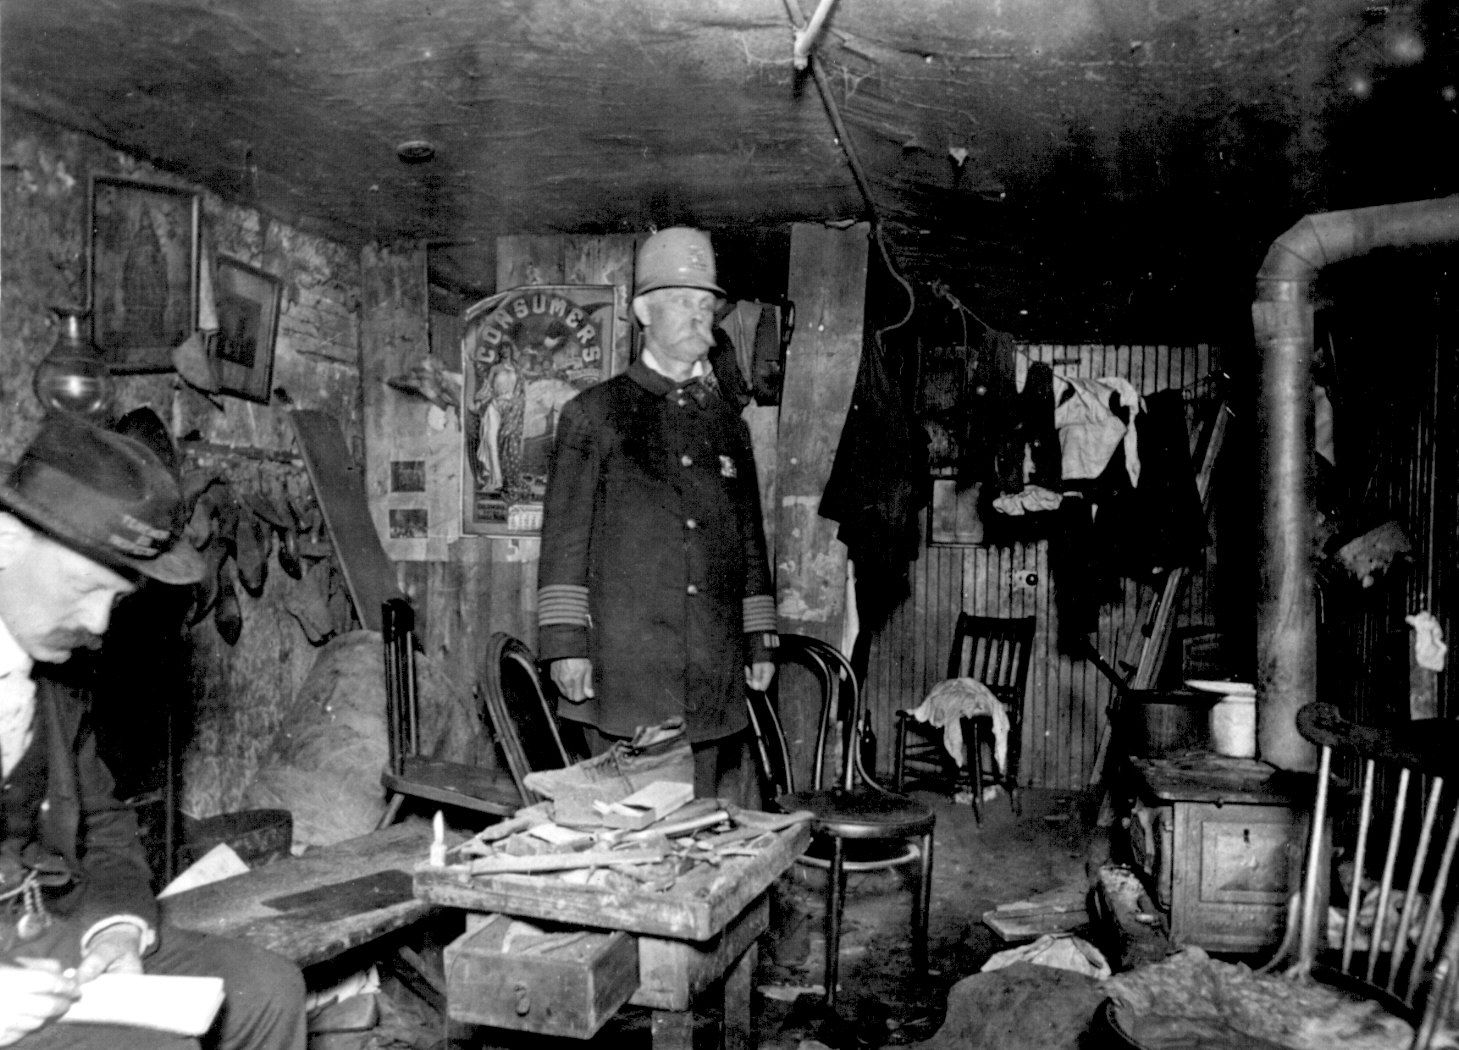 two officials of the new york city tenement house department two officials of the new york city tenement house department inspect a cluttered basement living room